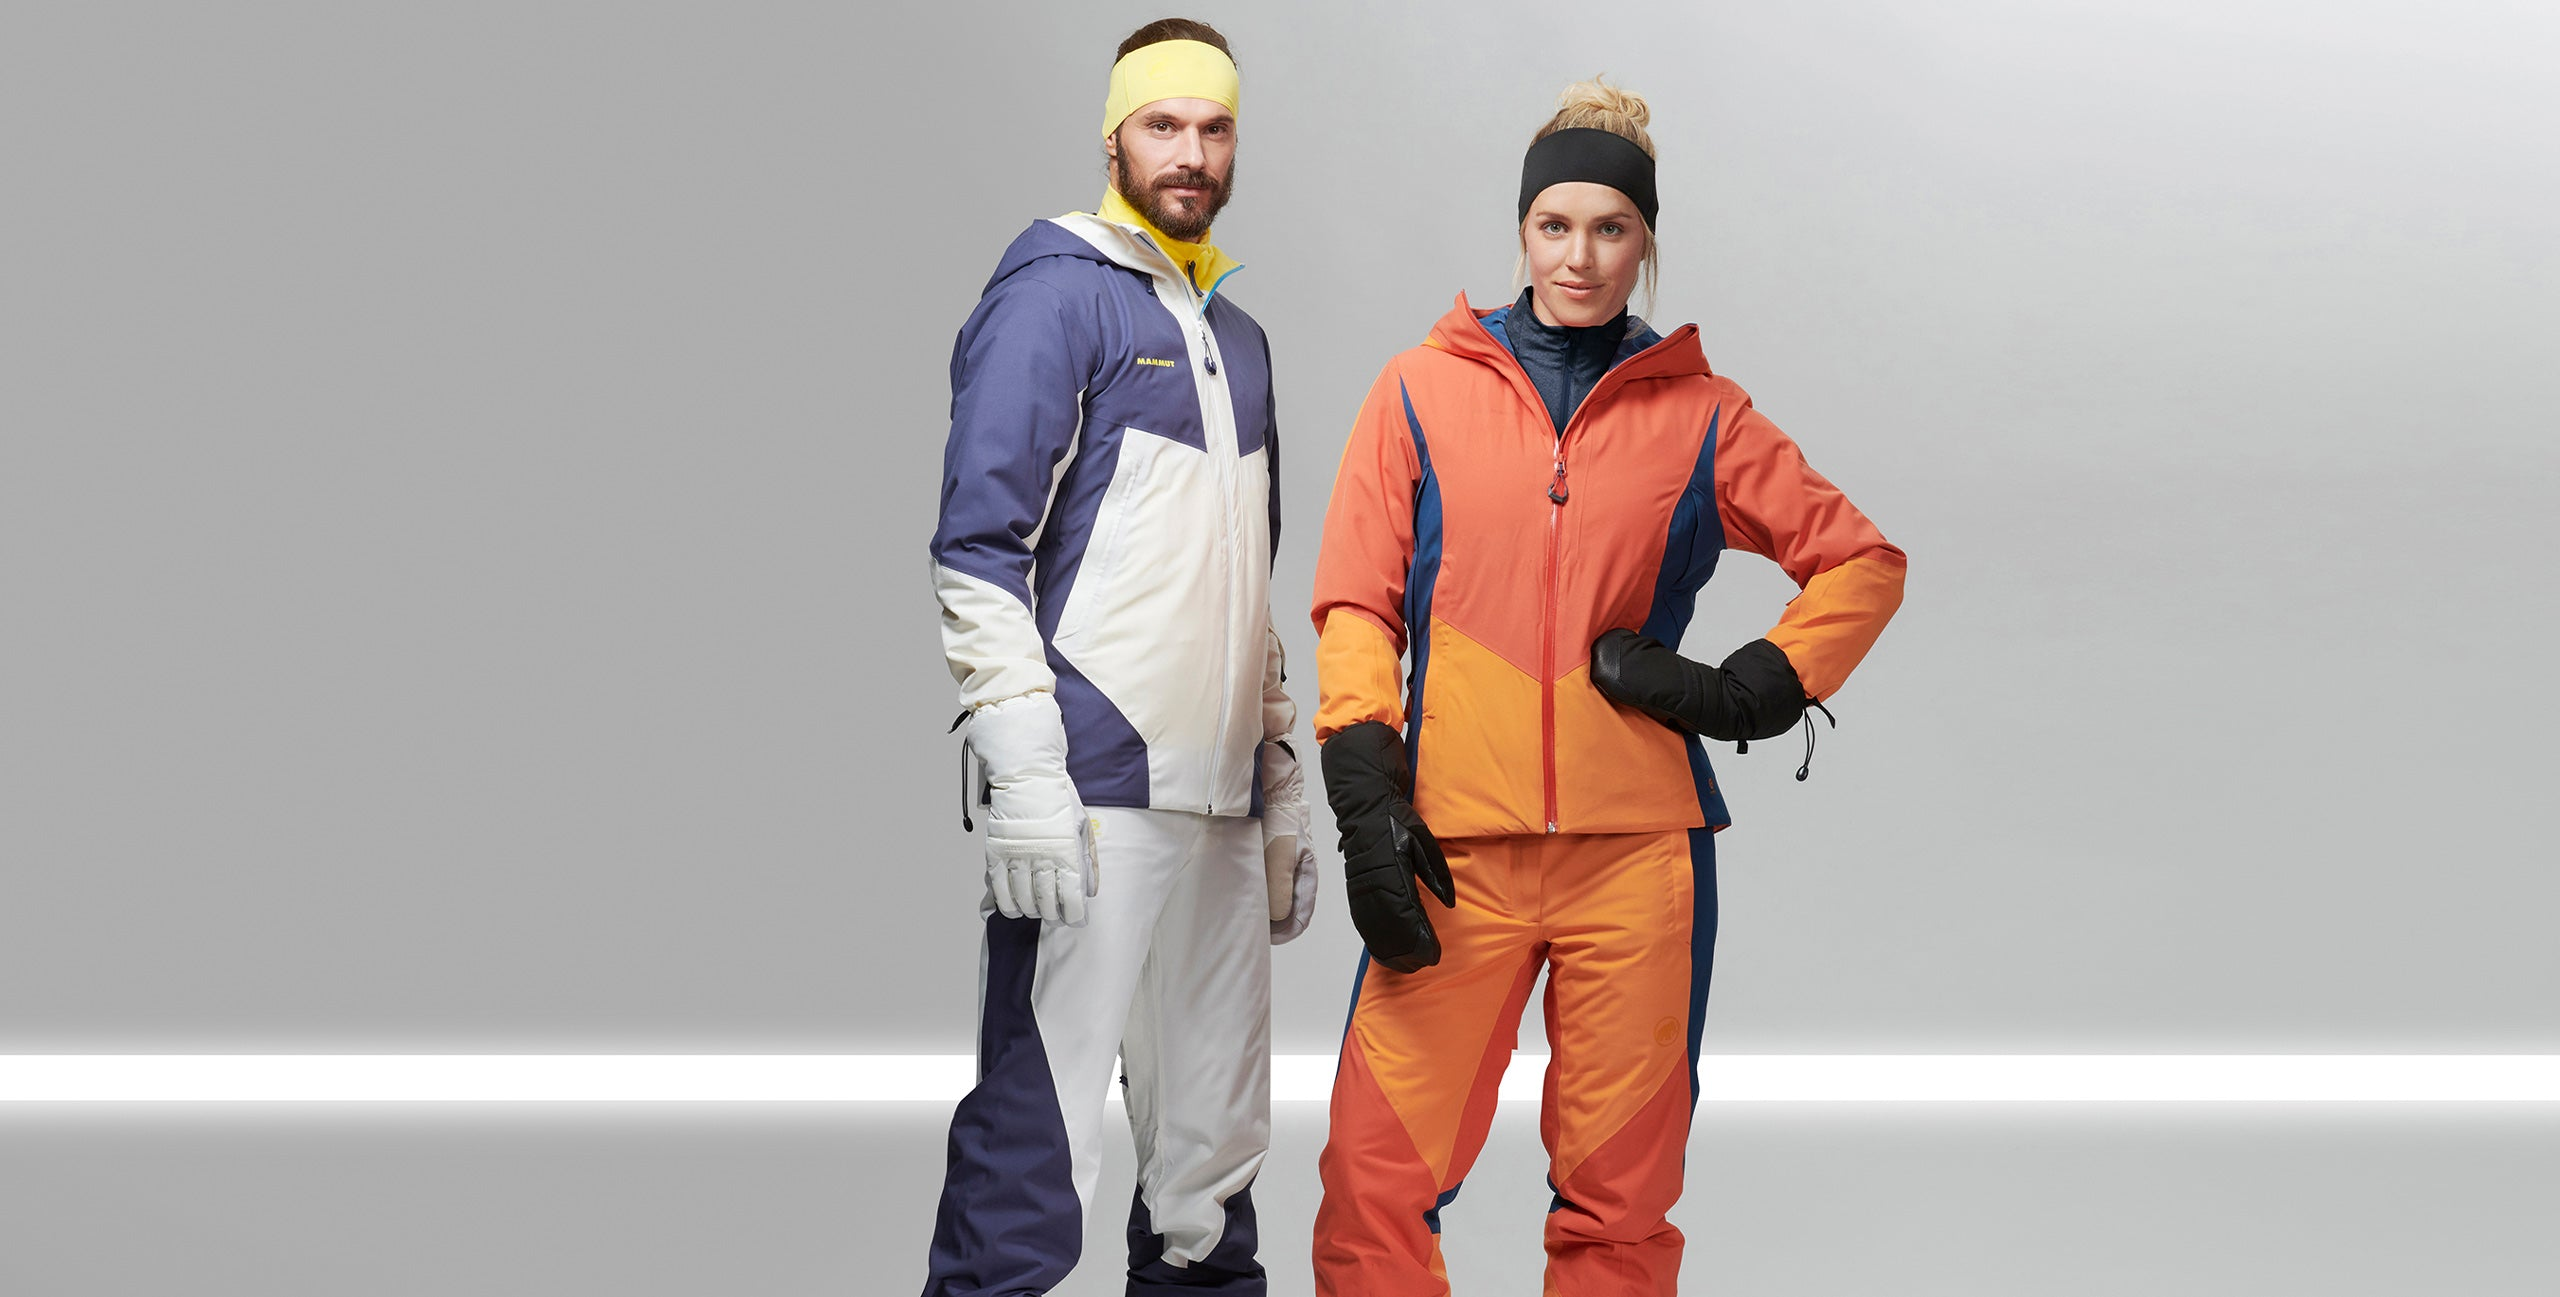 MADE FOR PERFORMANCE - NOT FOR POLLUTION: THE CASANNA SKI OUTFIT